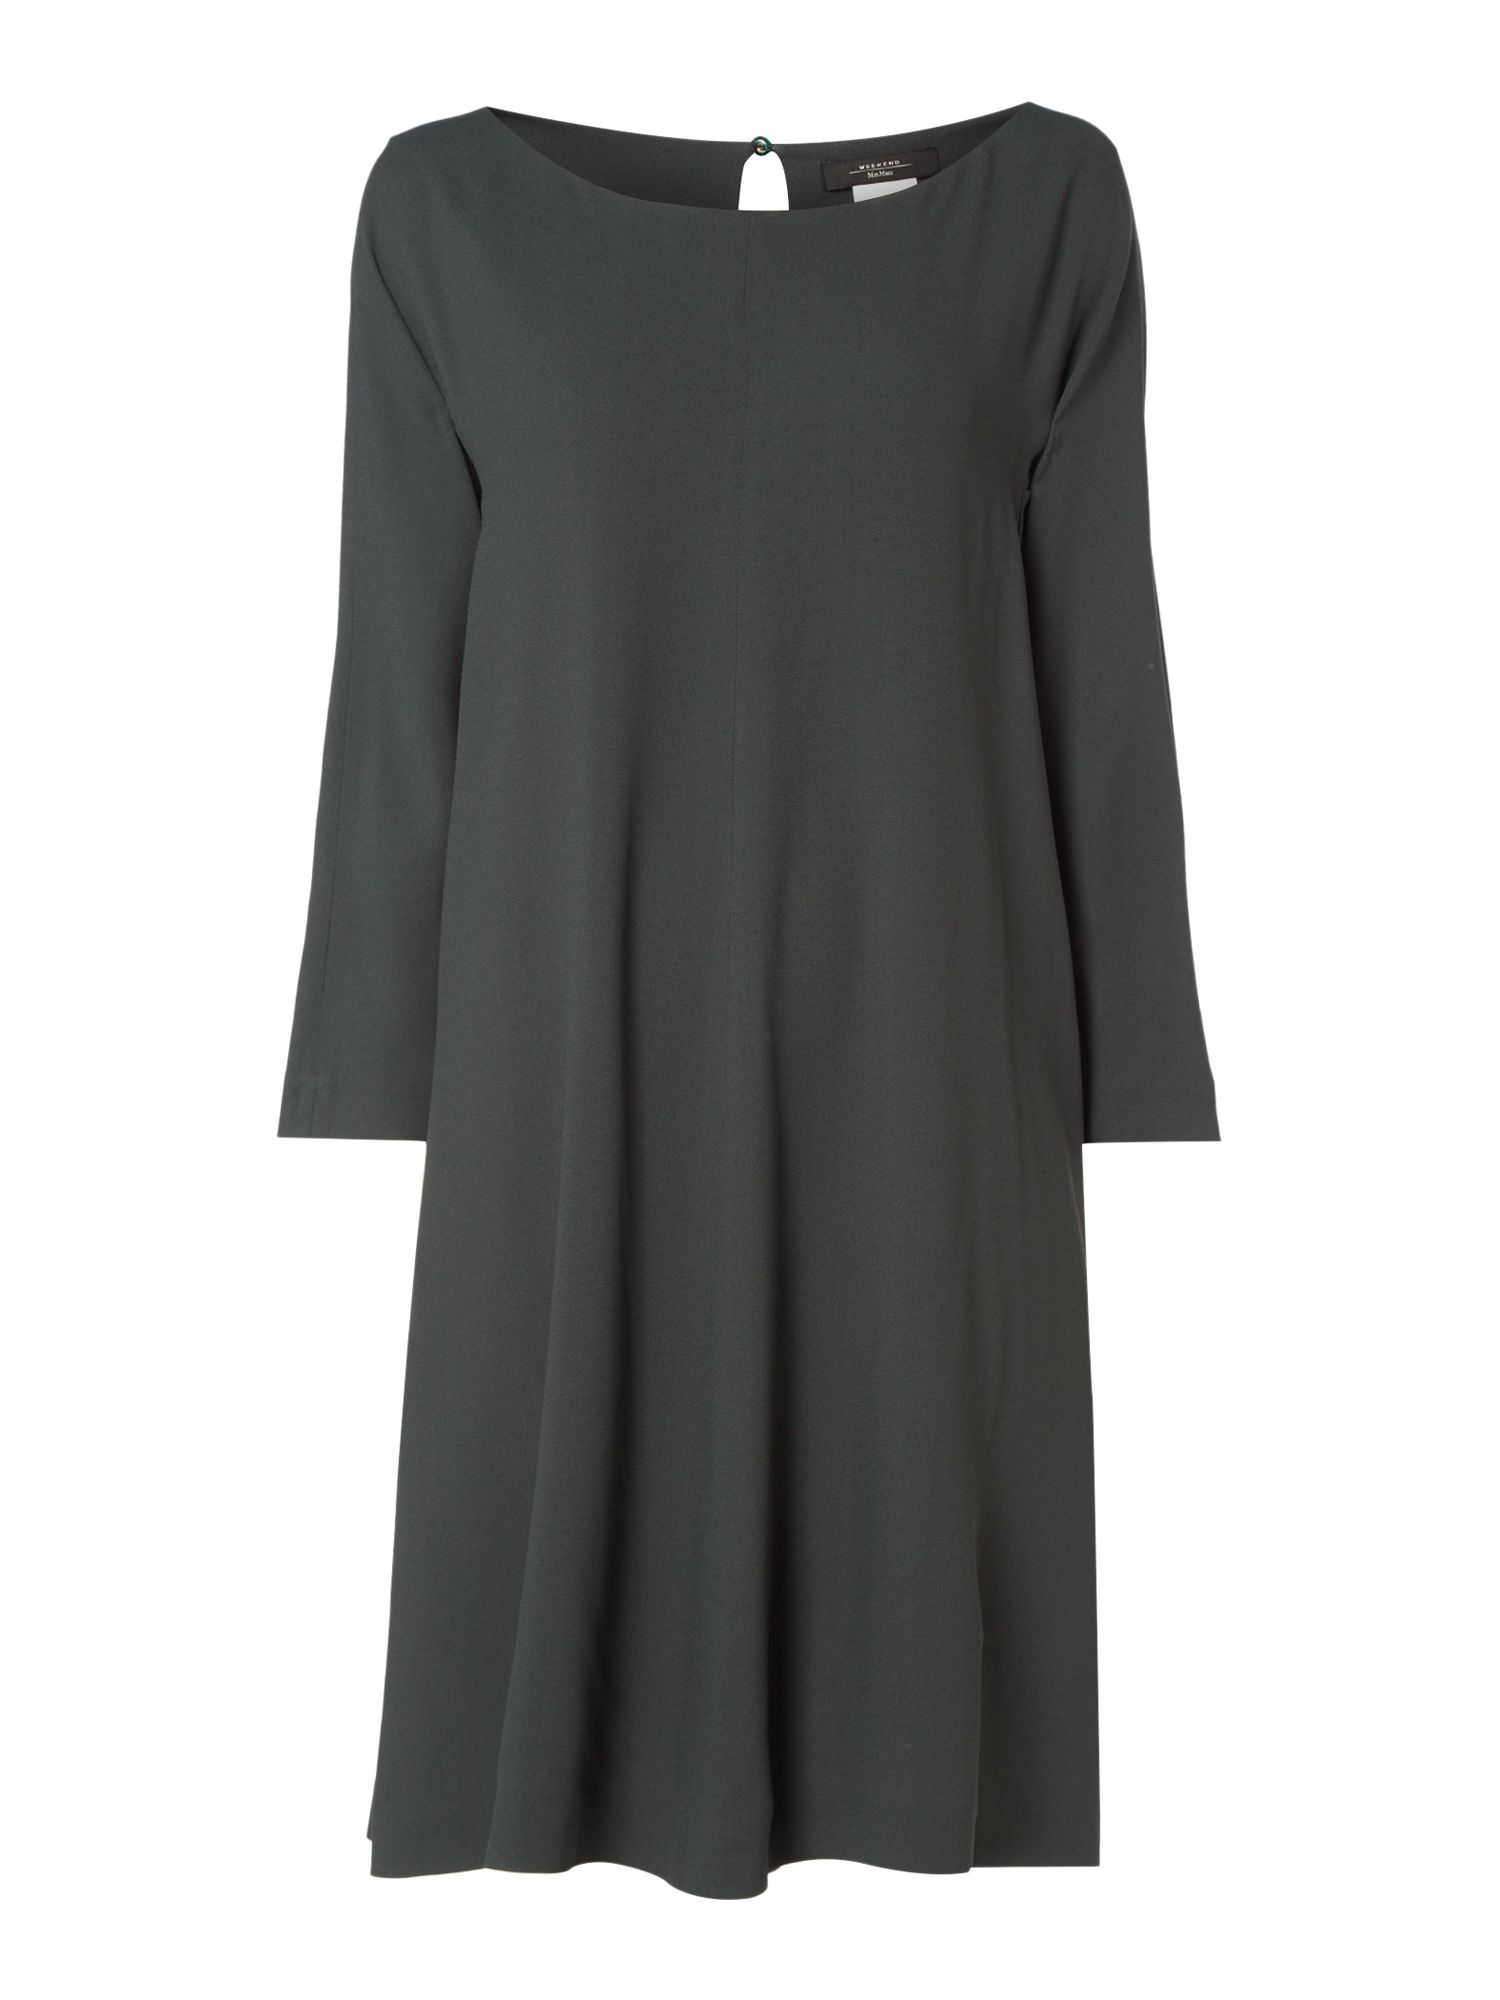 Max Mara Weekend Uberta Long Sleeve Round Neck Shift Dress, Dark Green